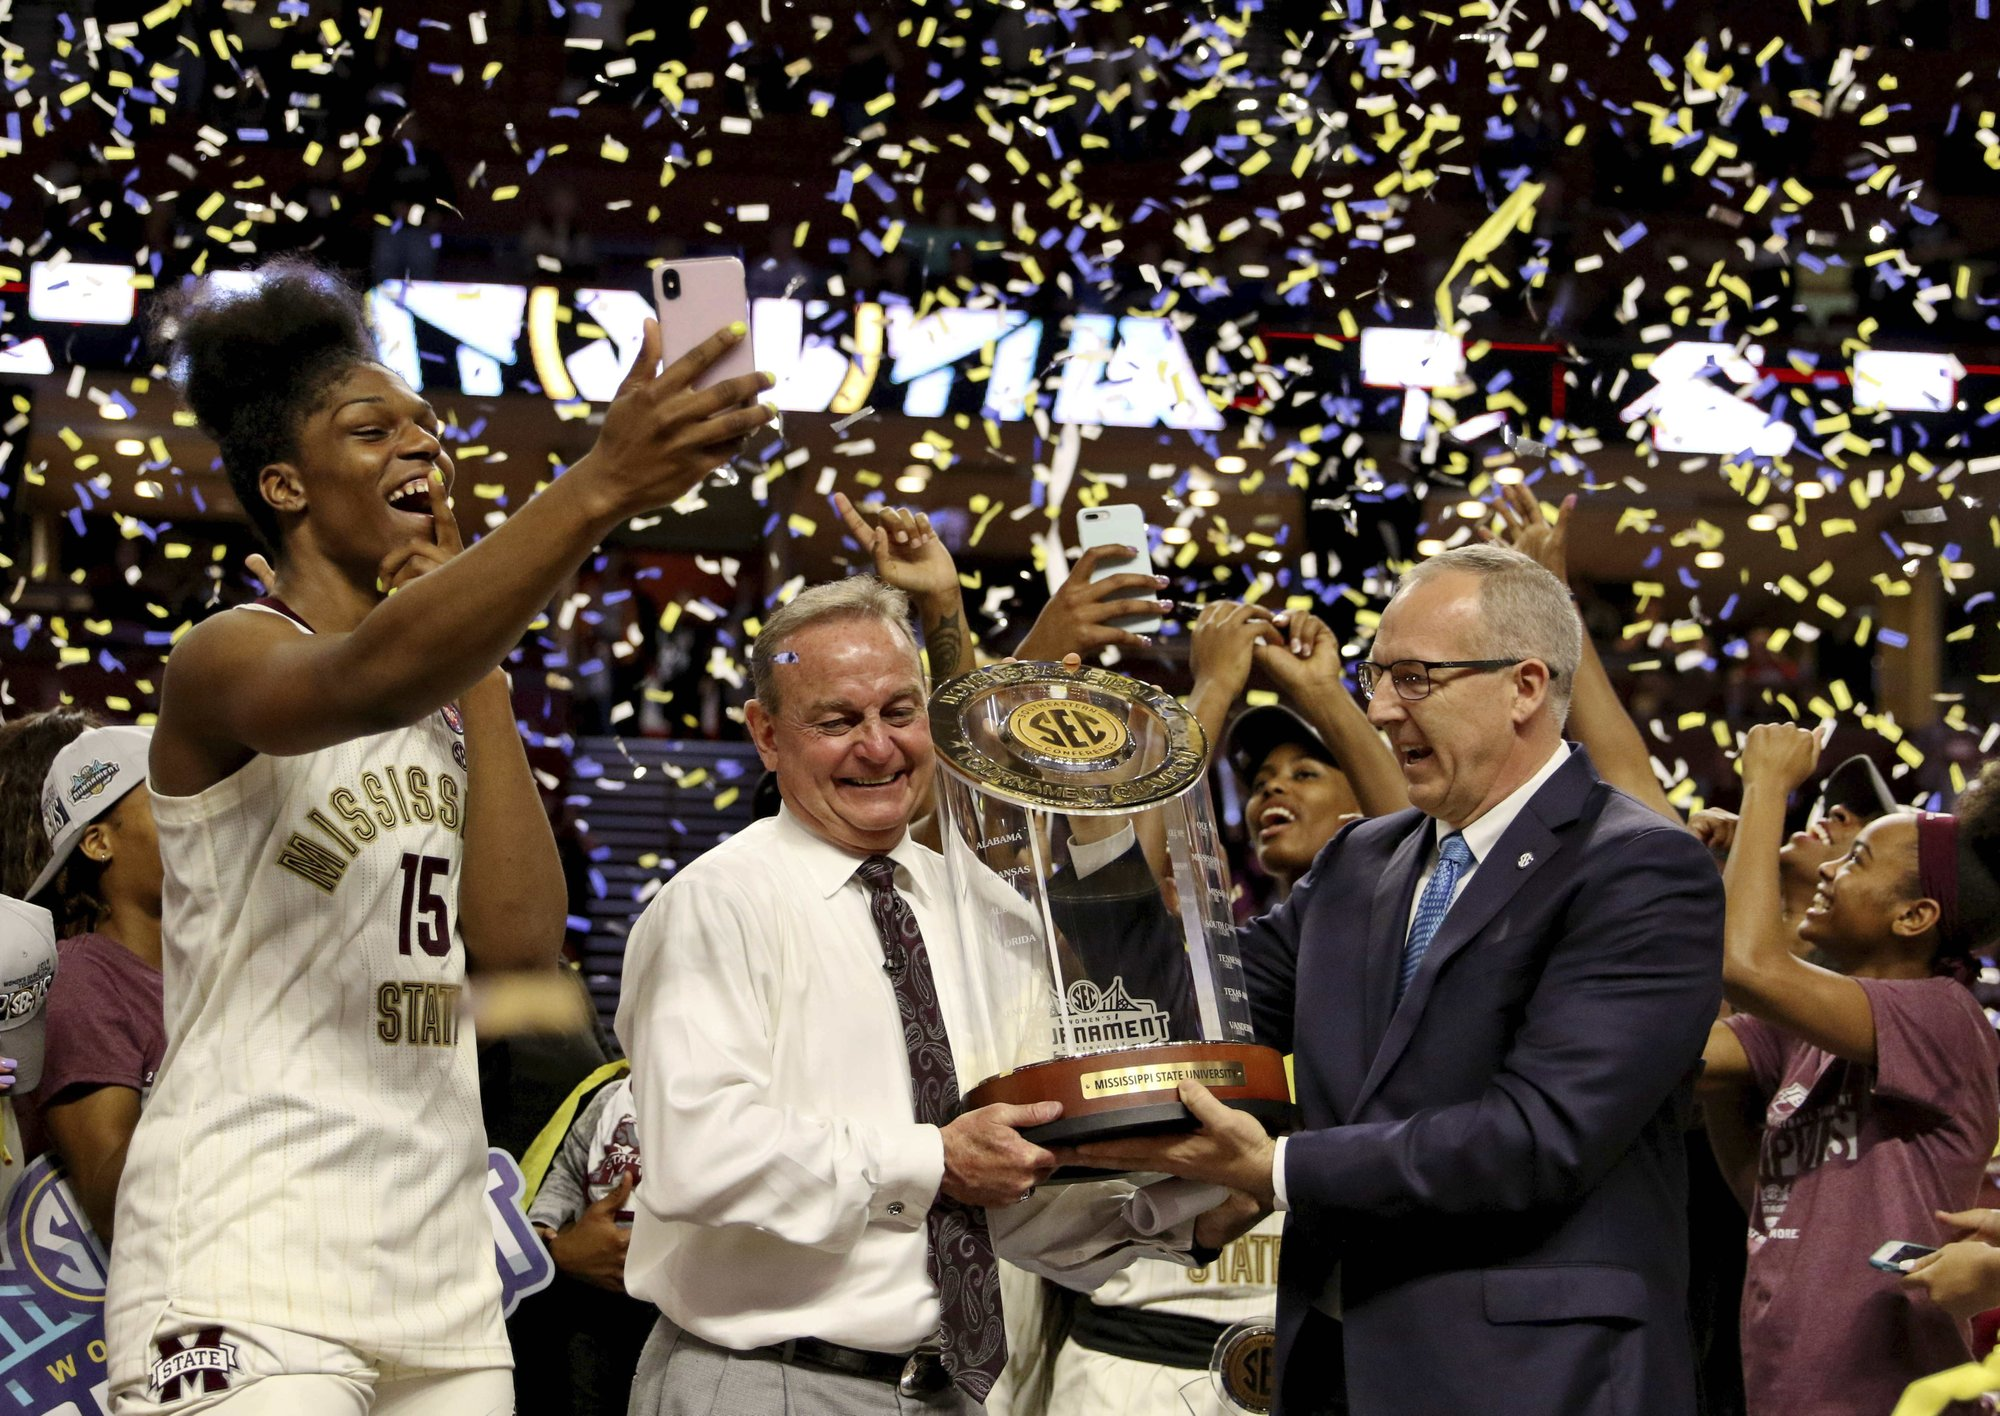 Third try: Mississippi St aims for title after close calls